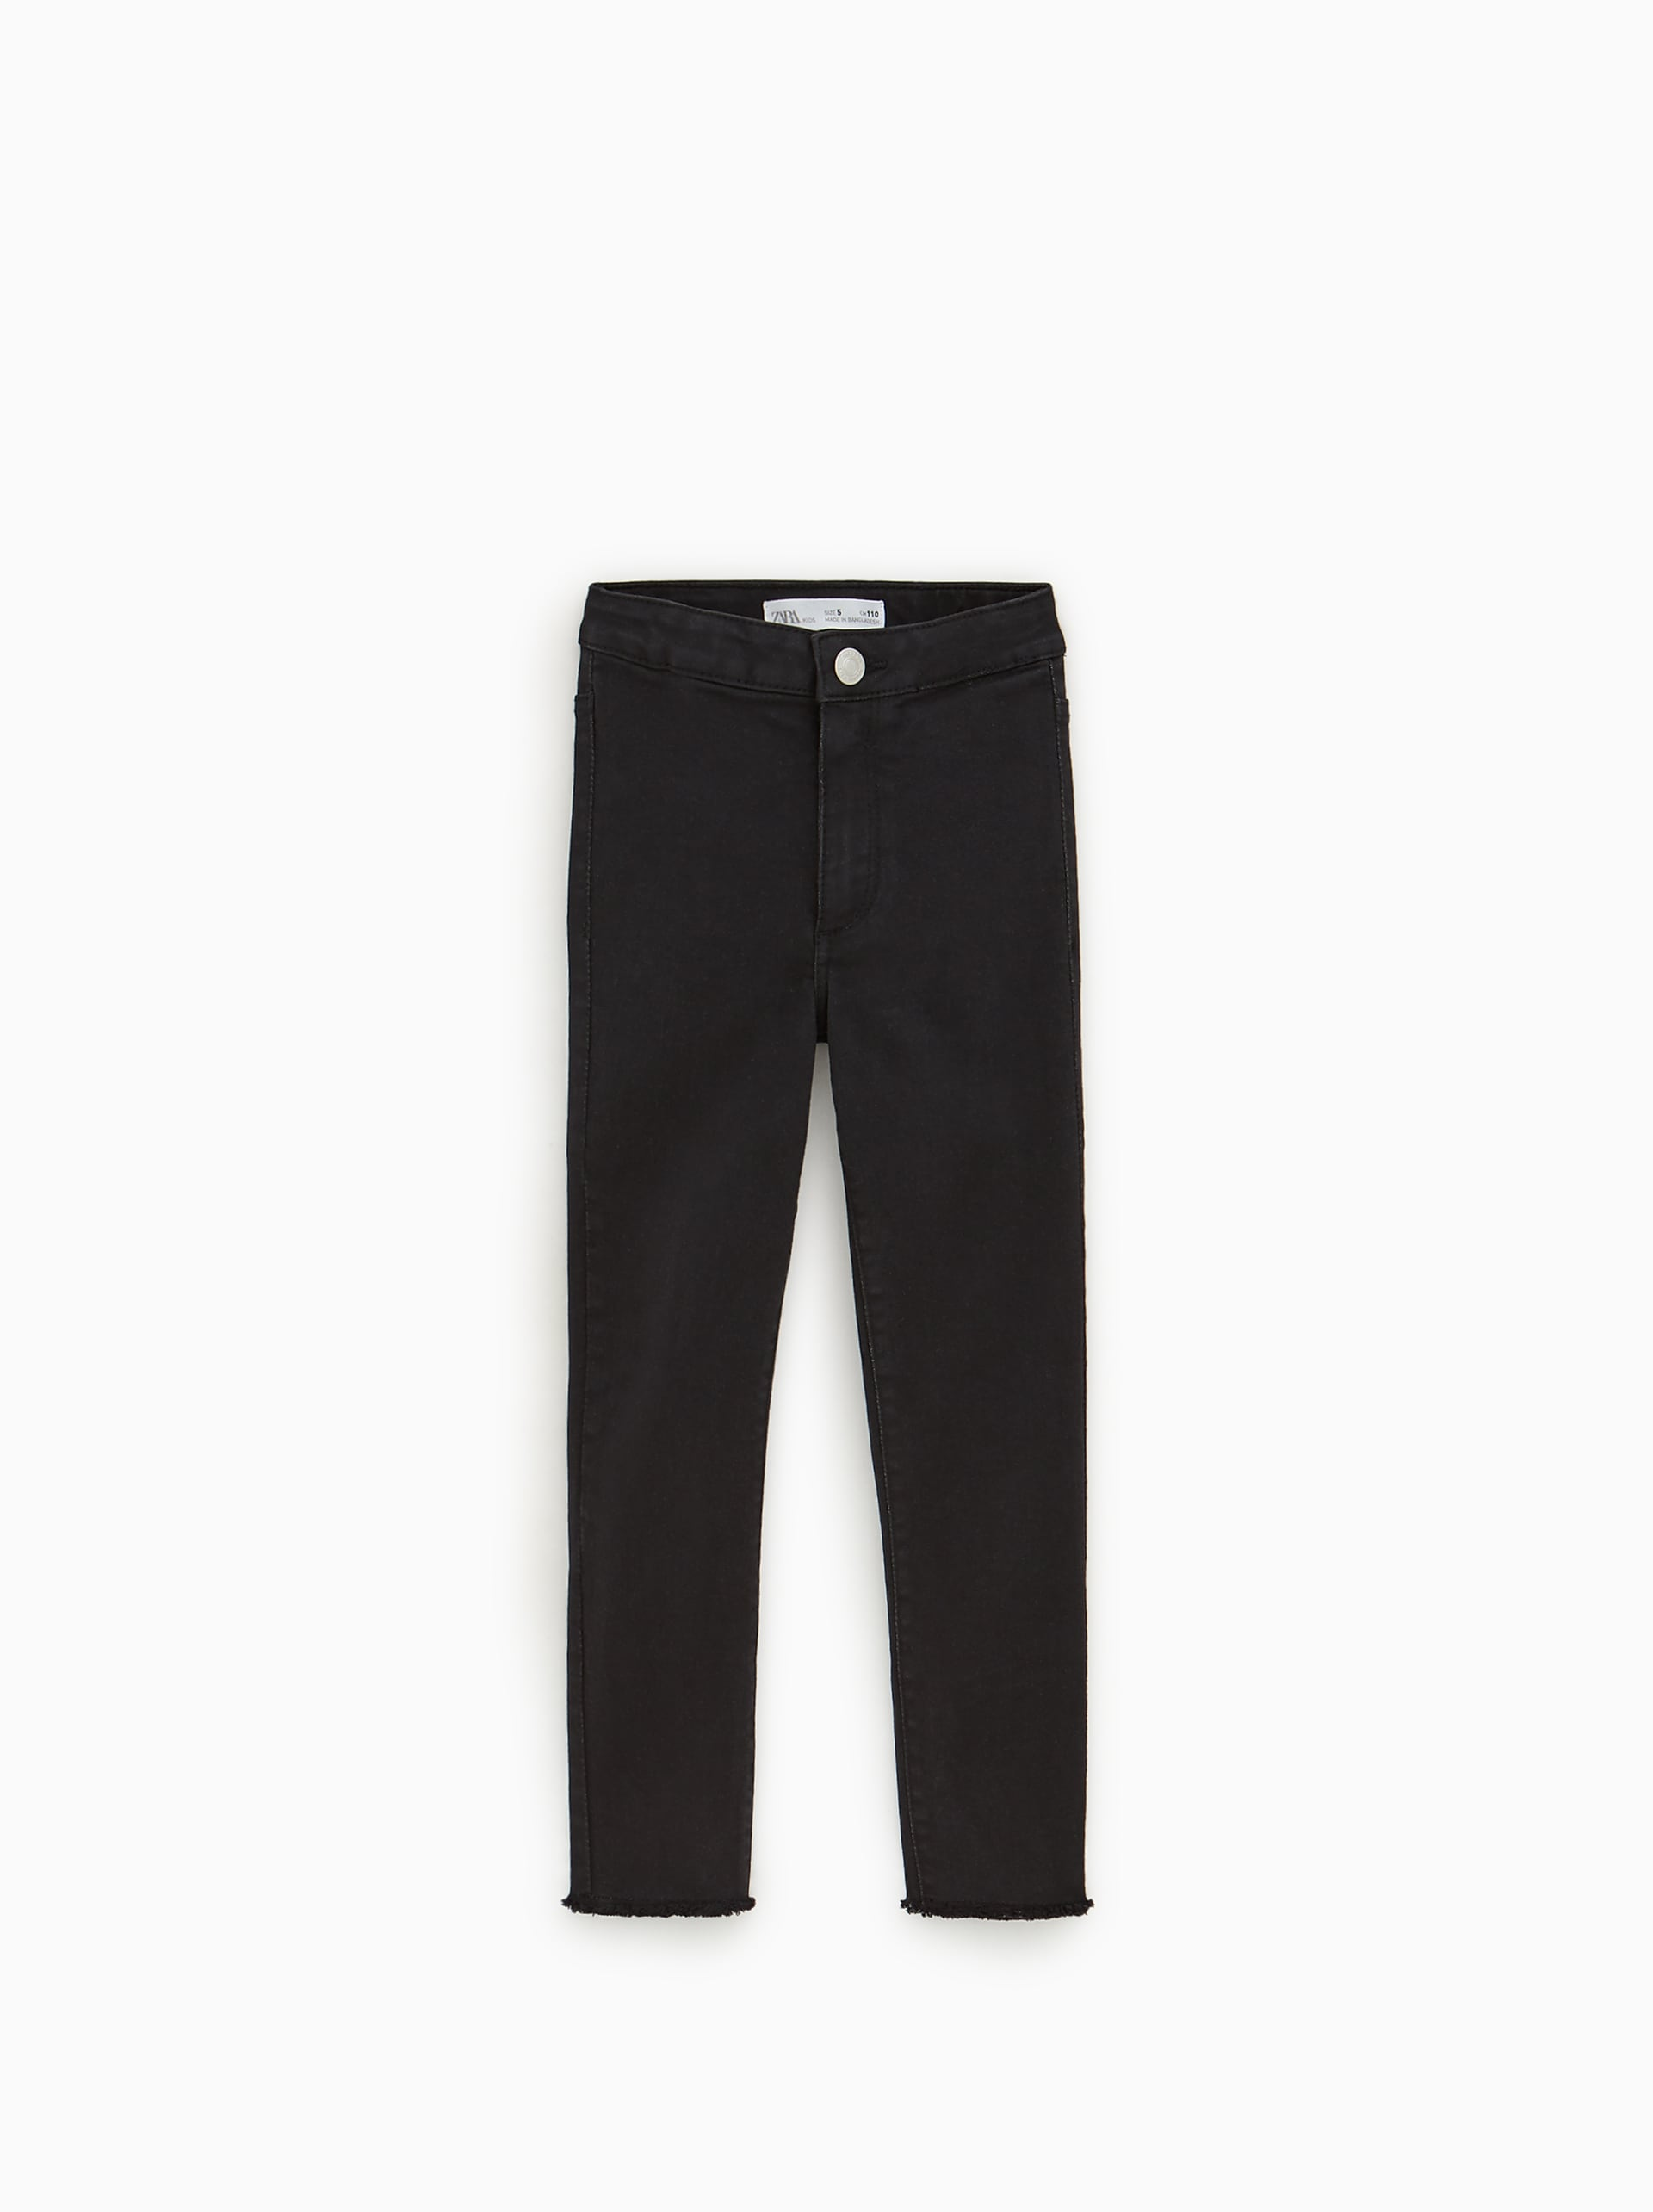 e84eb450 JEGGINGS WITH FRAYED HEMS - Plain-LEGGINGS AND TROUSERS-GIRL | 5-14 ...